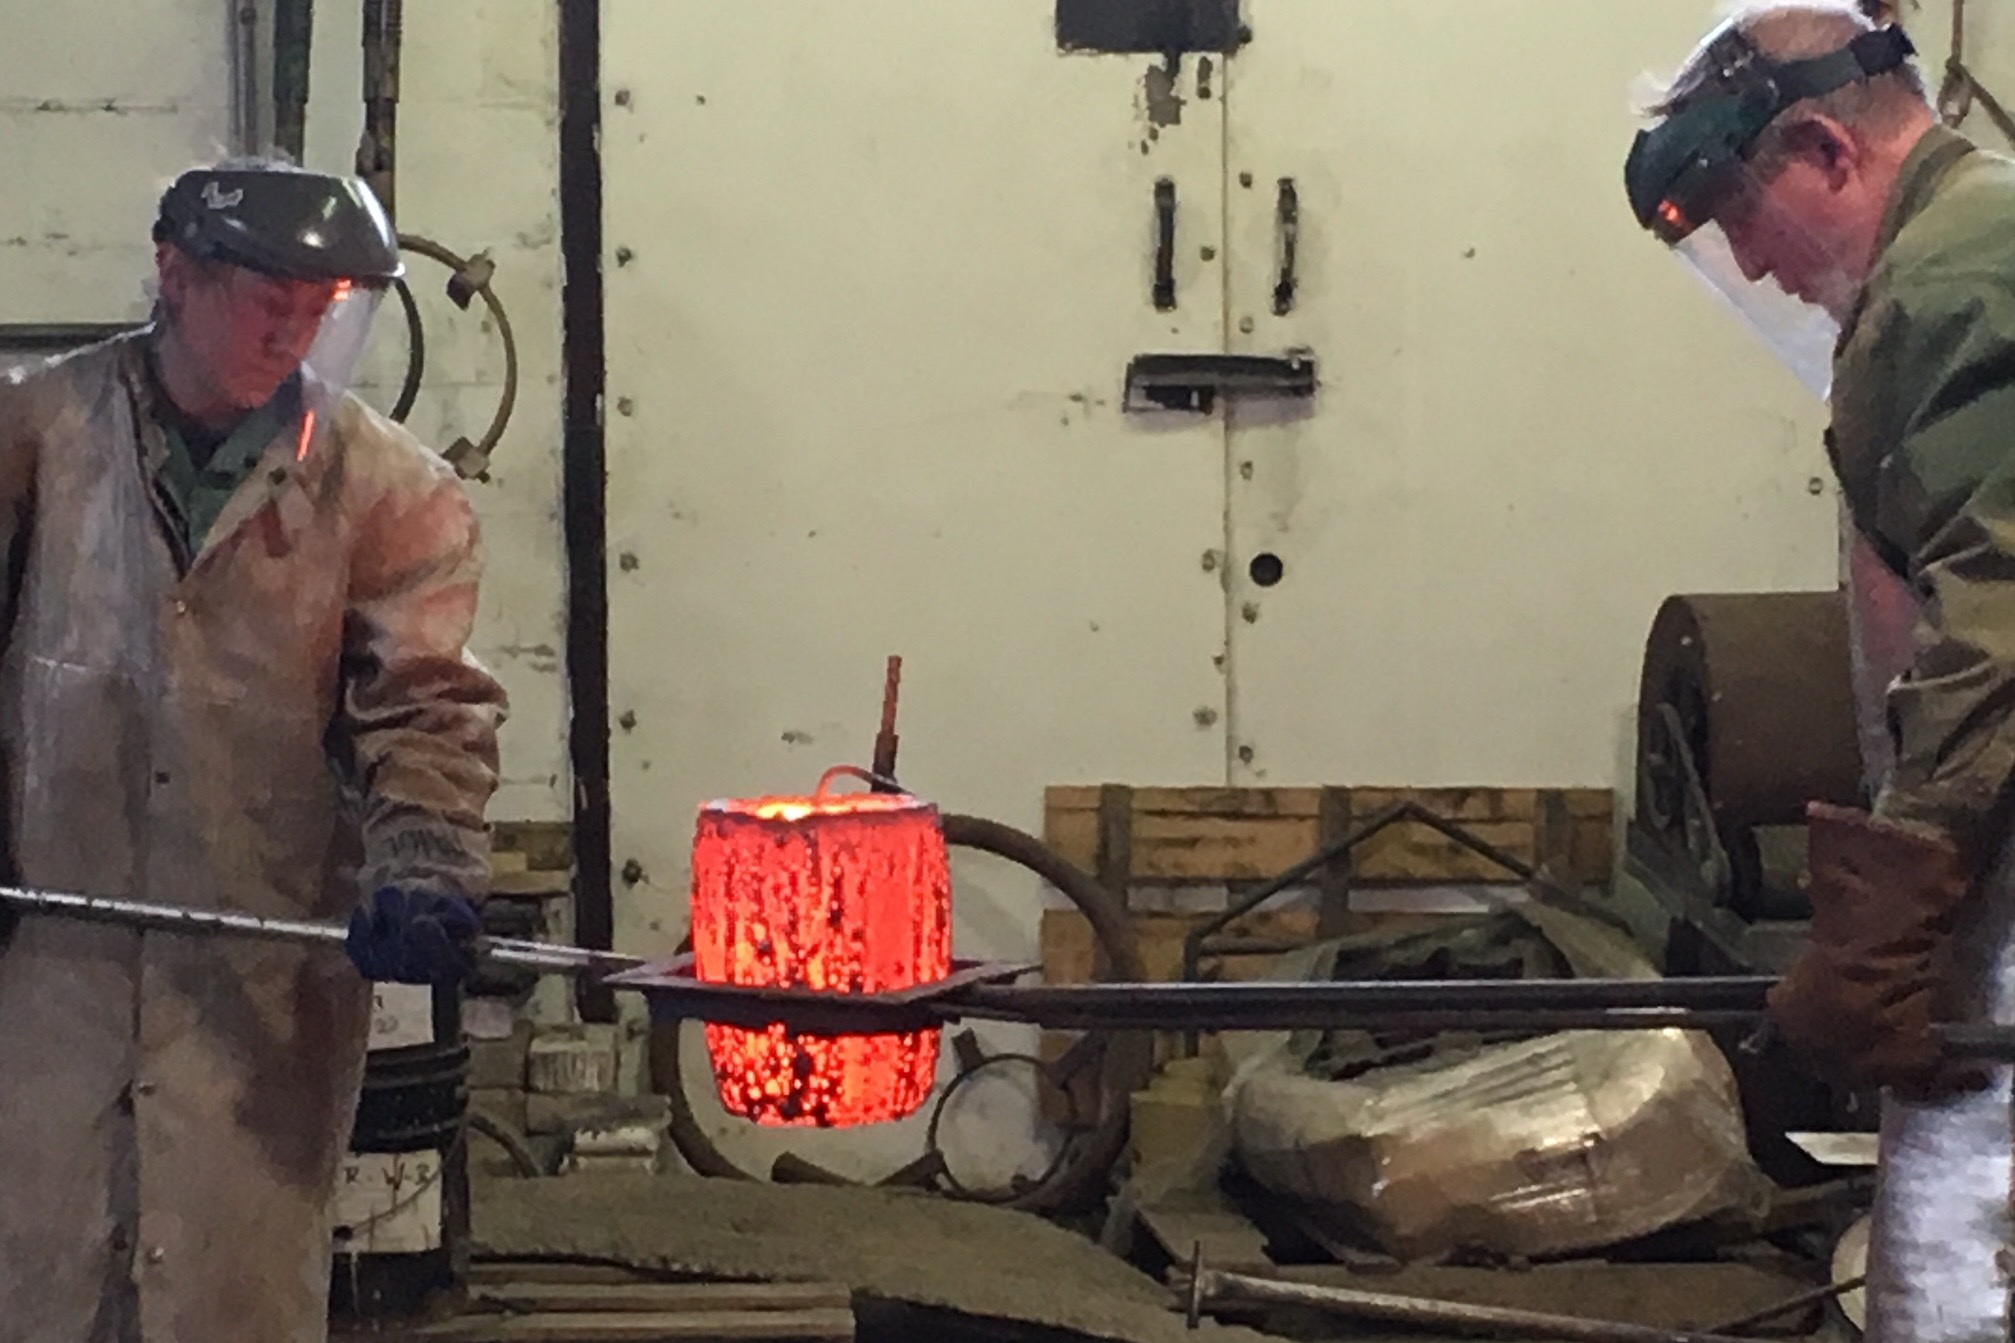 Bronze Pour - Gina Michaels and John N. Phillips hosted a bronze pour at their studio on ISC Day, April 28, 2018.